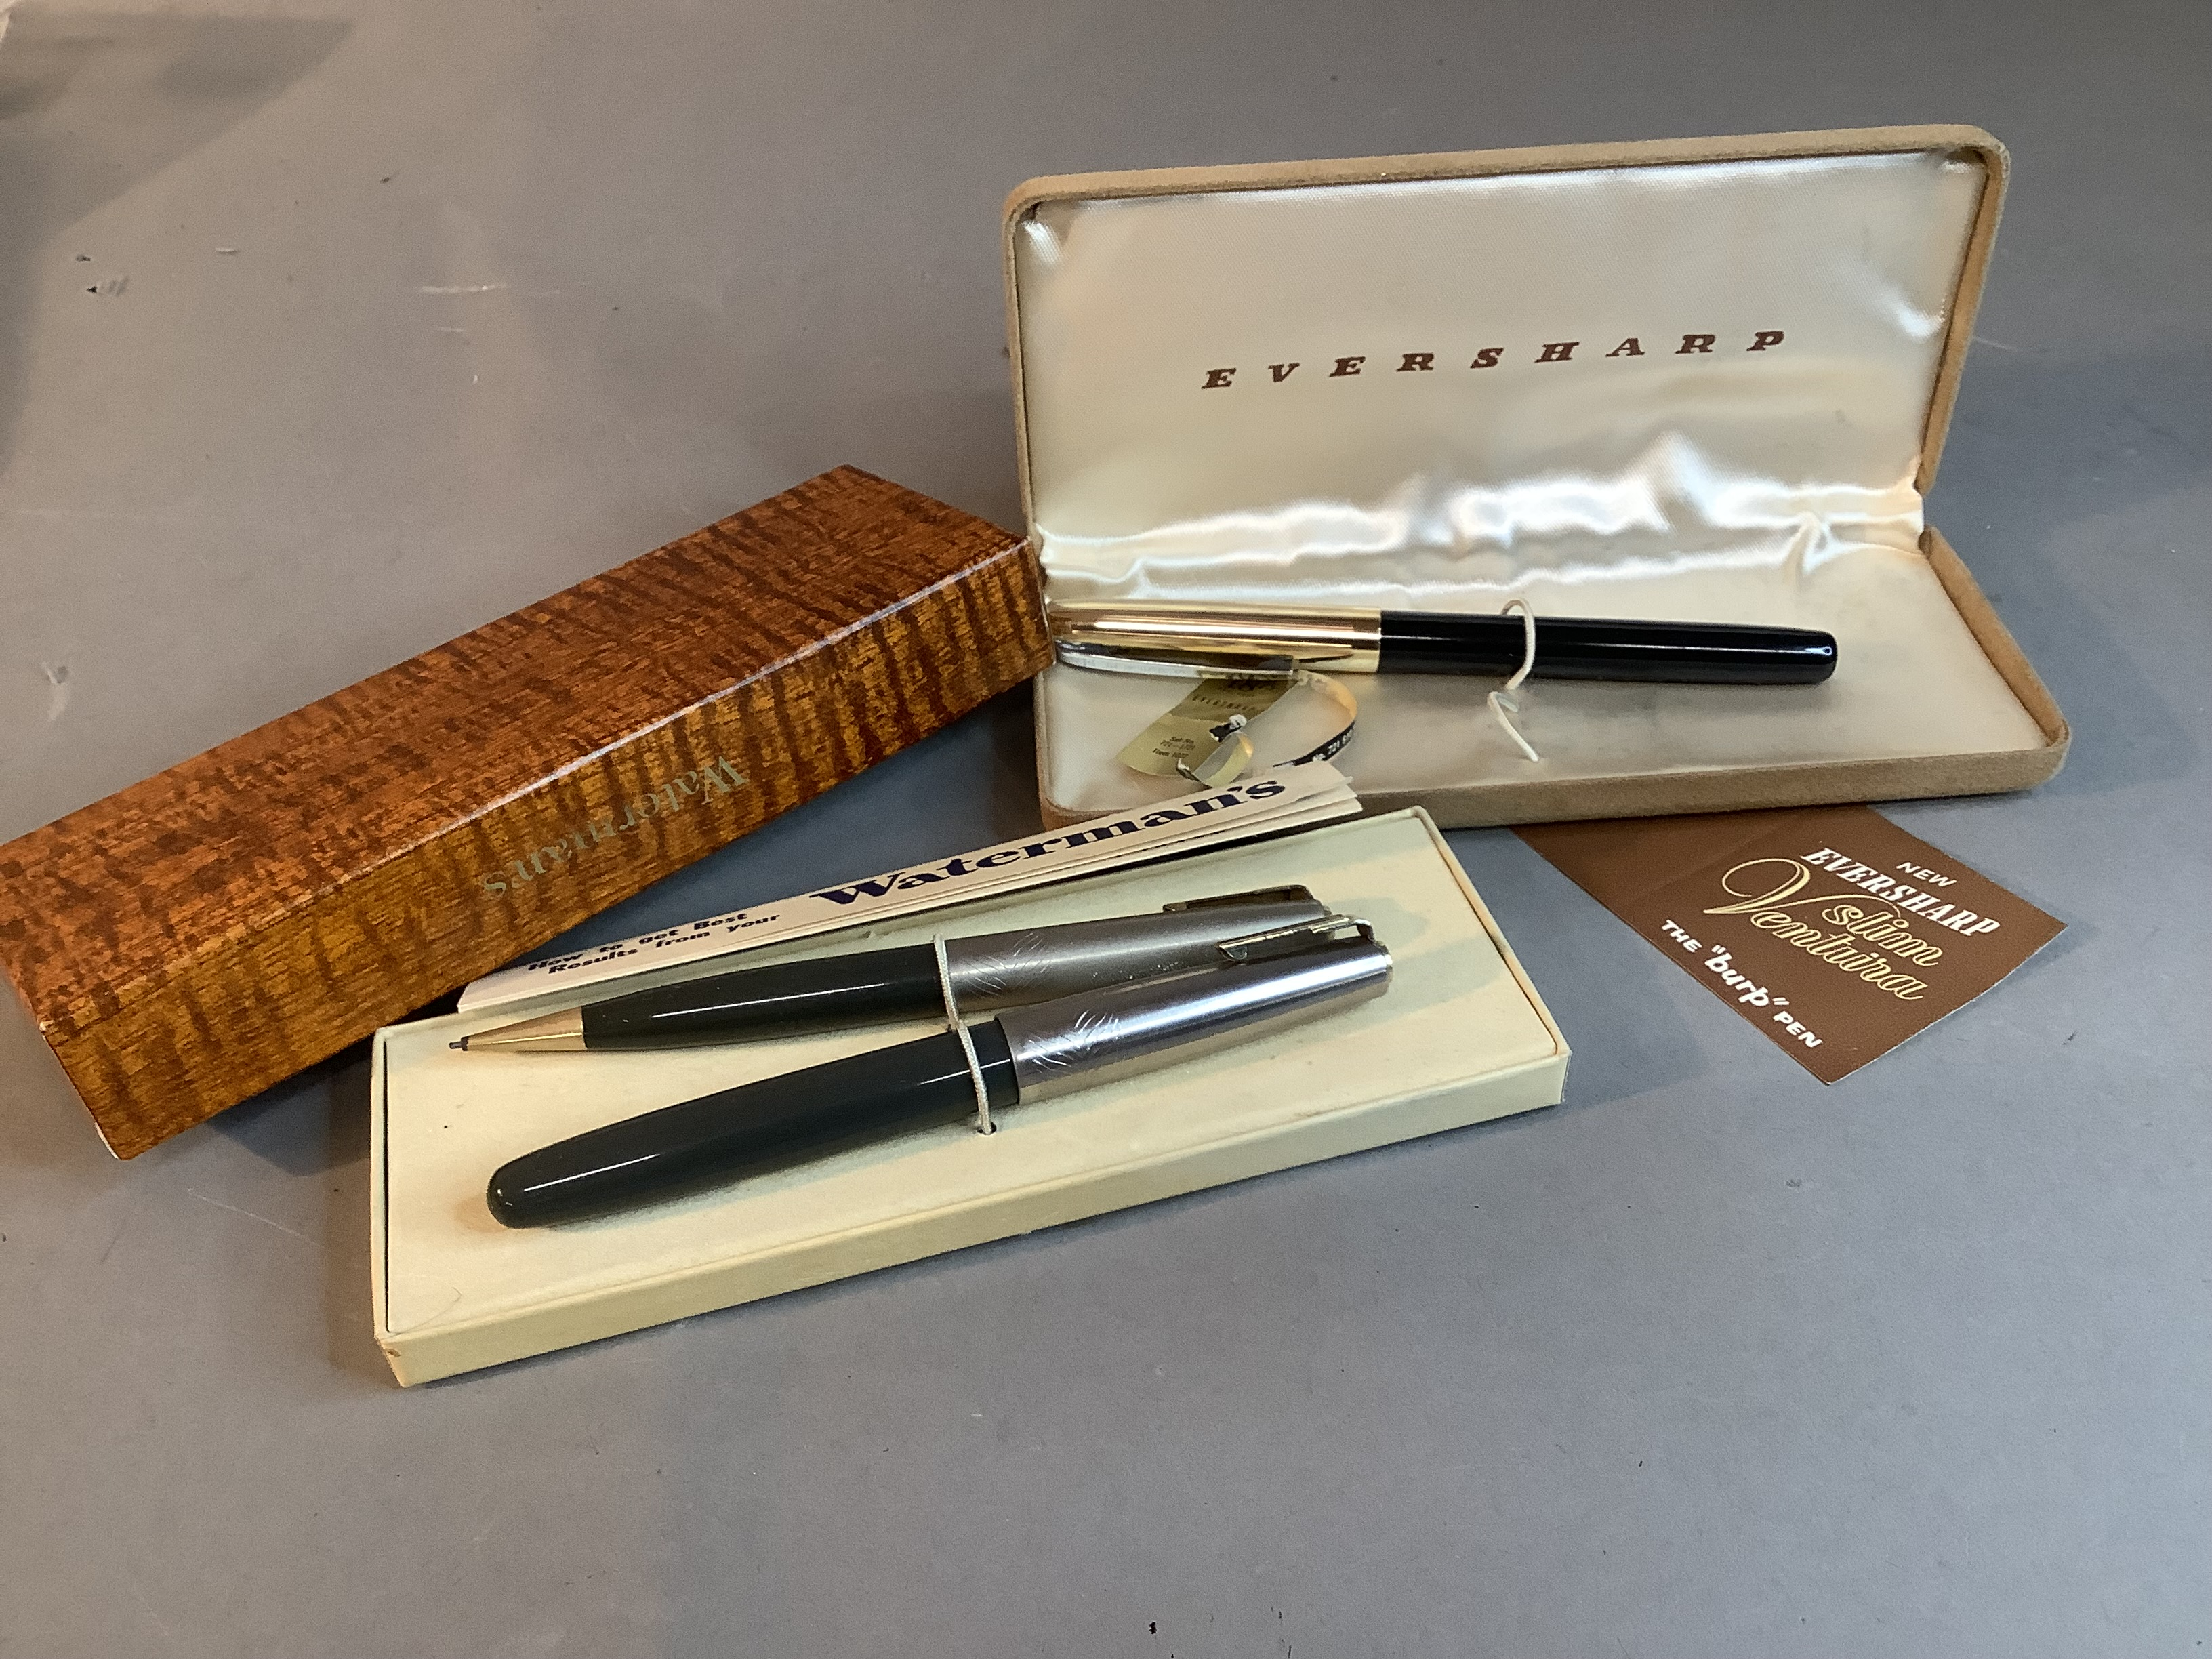 A Watermans ideal fountain pen and propelling pencil set, grey with silver coloured top, in original